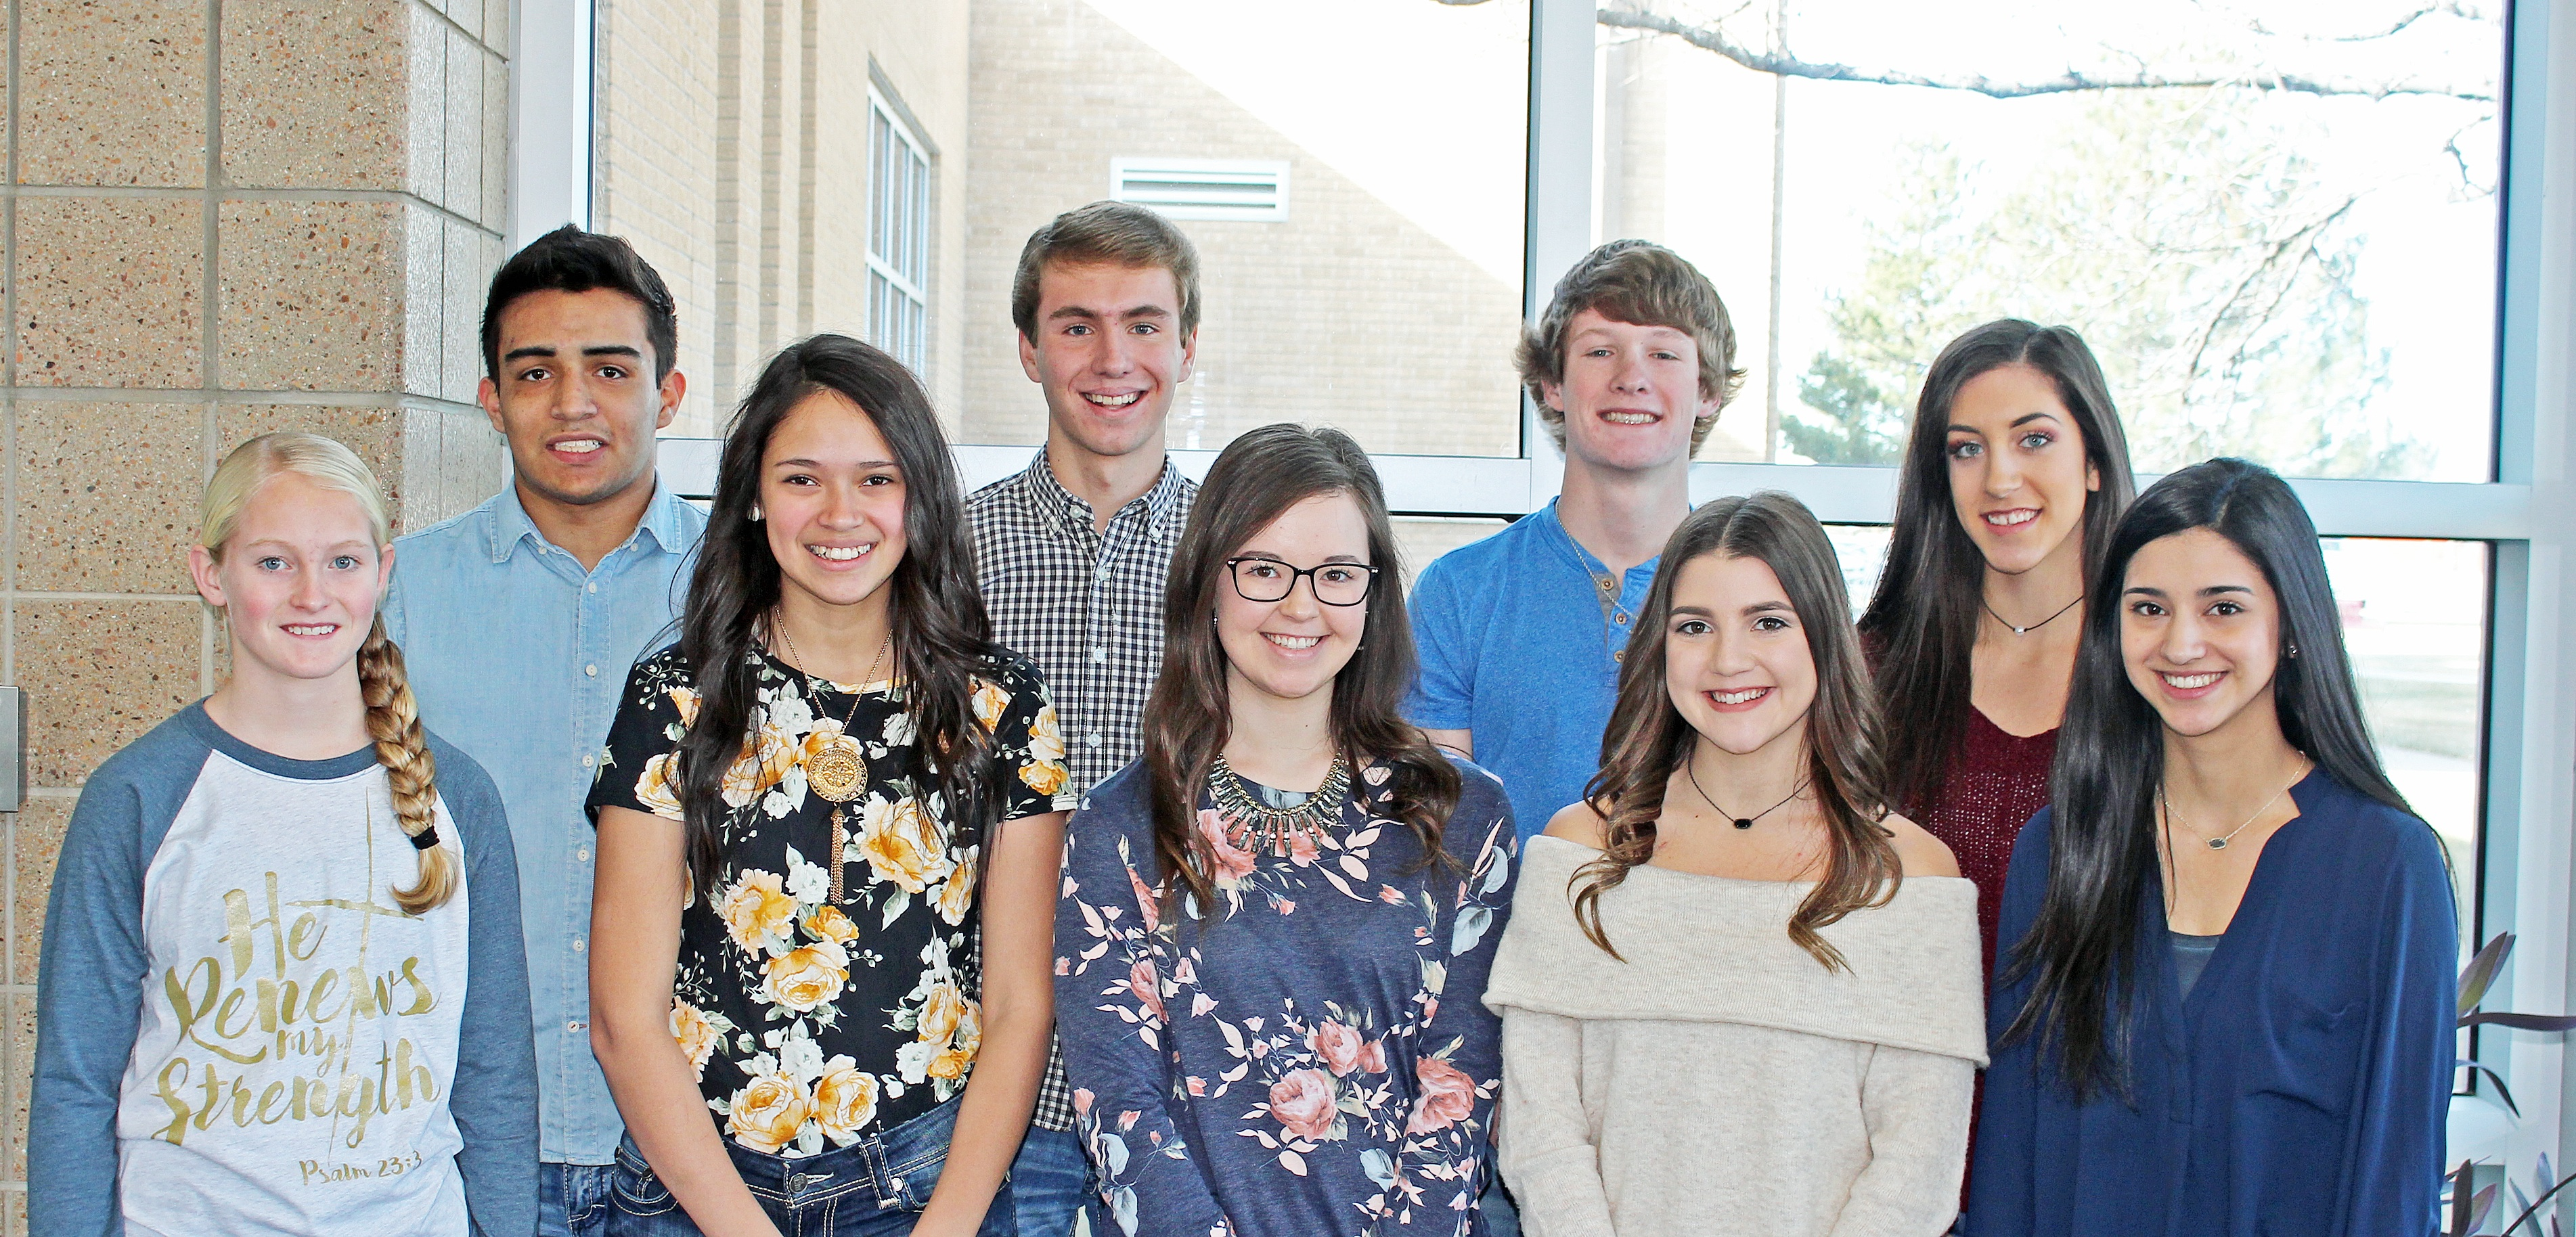 The 2018 HHS Winter Homecoming Court includes, back row left to right, senior King candidates Manny Mendoza, Eric Perry and Dawson Burnett and senior Queen candidate Jayden Korf. In the front row are freshman attendant Molly McClure, sophomore  attendant Johanna Bojorquez, junior attendant Hannah Archuleta and senior Queen candidates Skyelynn Muñoz and Abigail Marioni. The Homecoming King will be crowned during the Pep Rally Wednesday afternoon, January 31 in the West Gym. The Homecoming Queen will be crowned Friday evening,  February 2 at halftime of the varsity boys' game. There will also be a semi-formal dance Saturday, February 3 from 8:30 to 11:30 p.m. in the high school cafeteria.